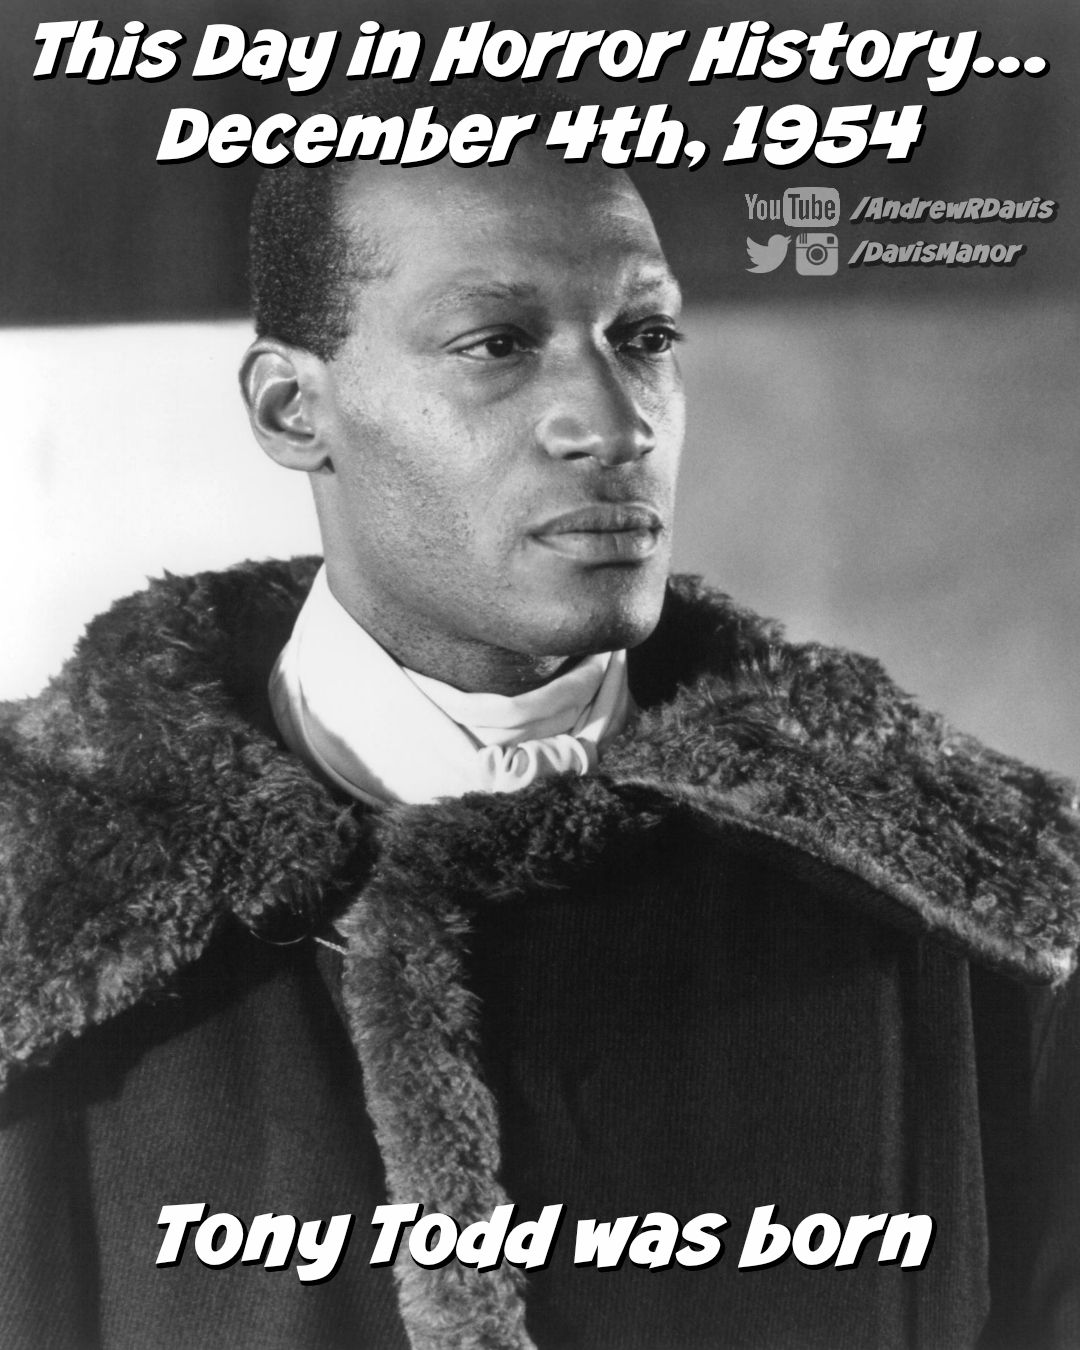 This Day in Horror History... December 4th, 1954 Tony Todd was born